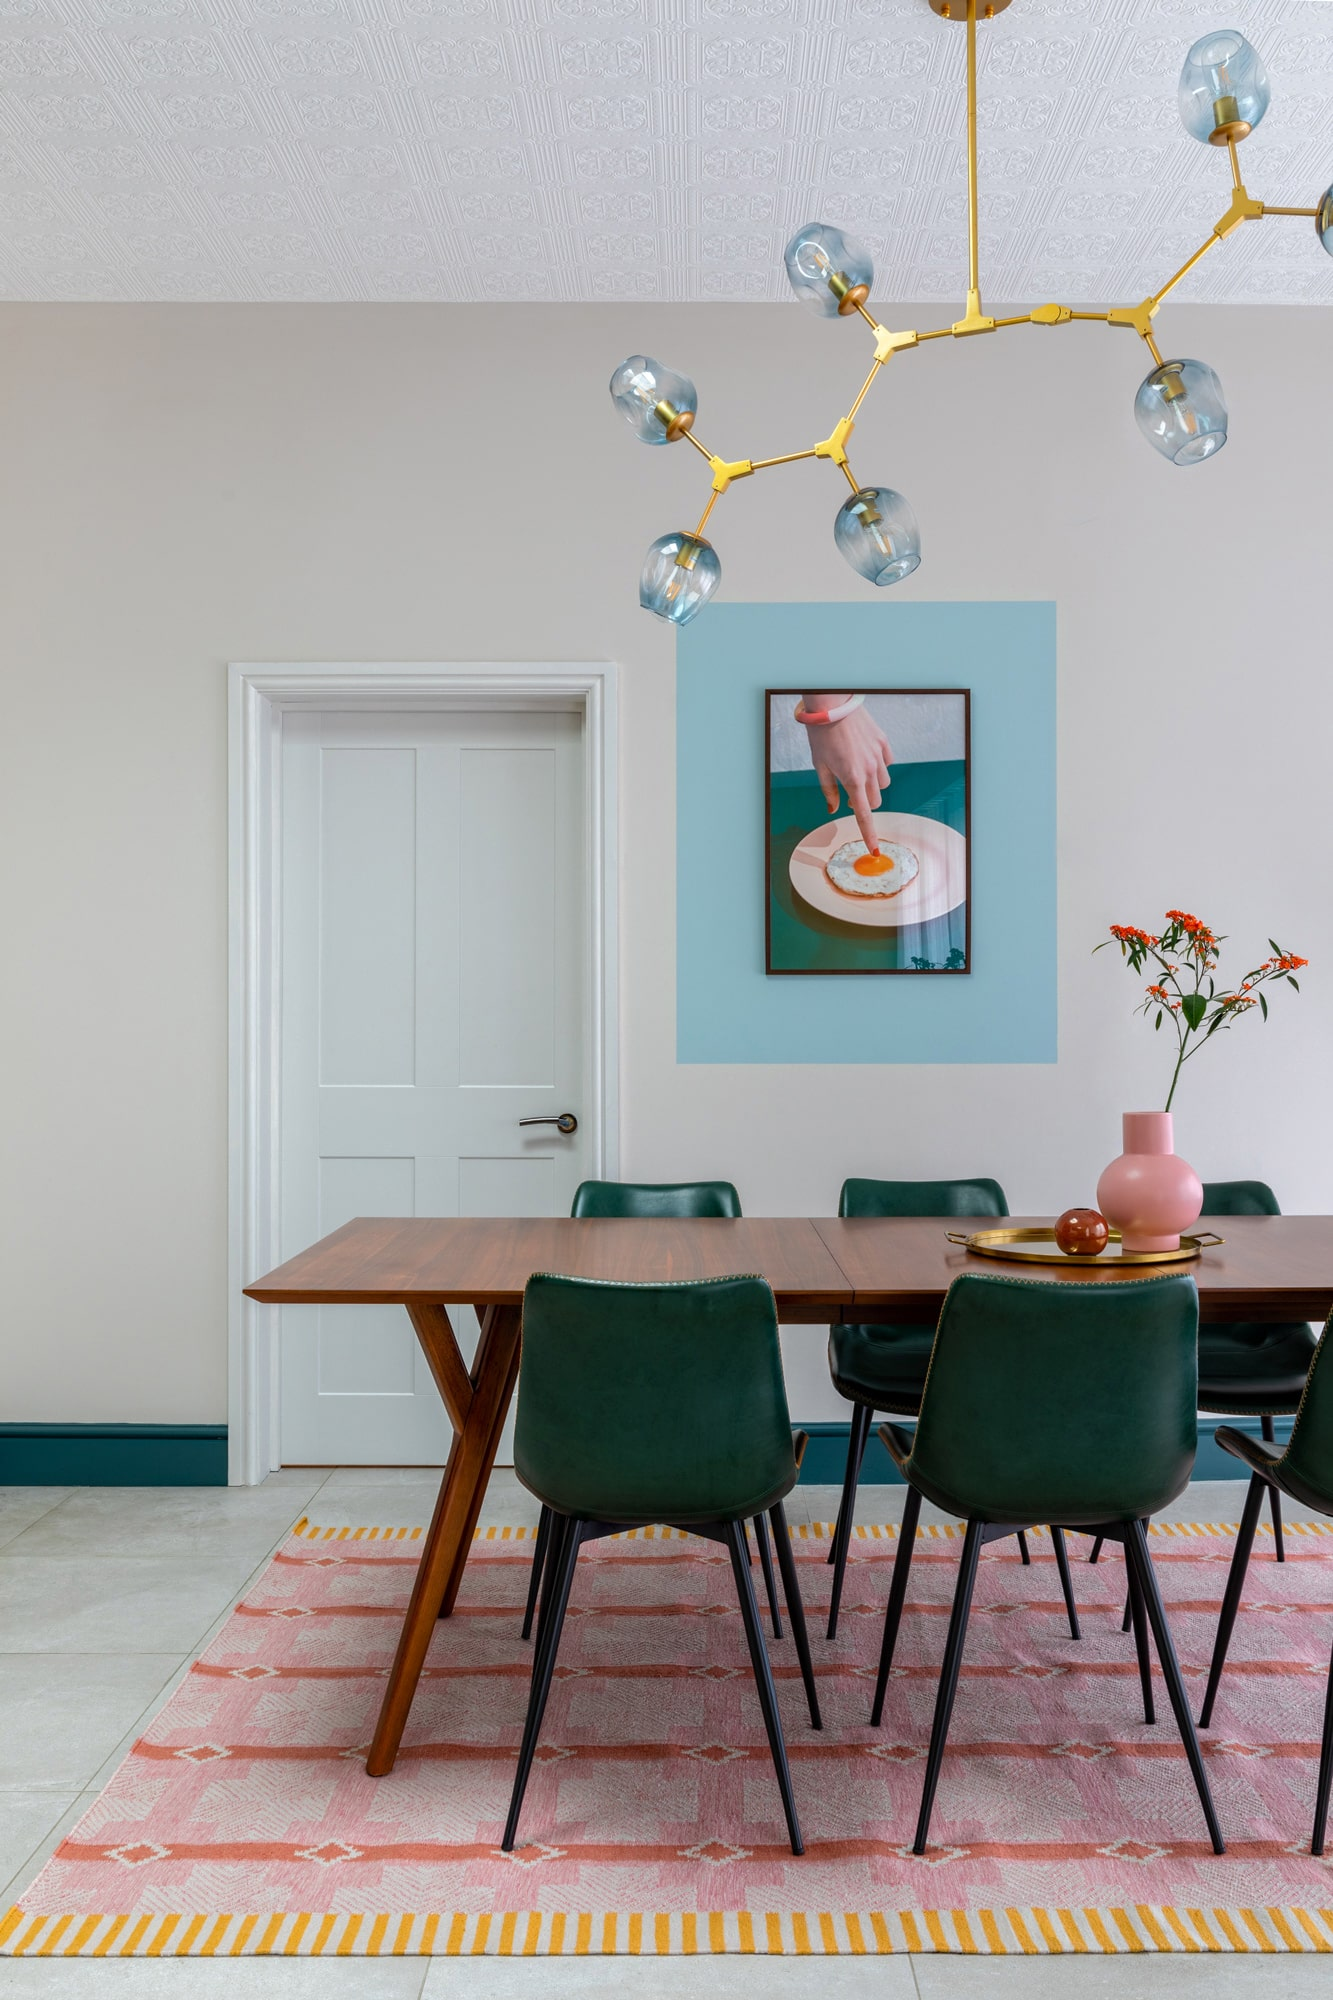 Interior photograph: a wooden dinning table, three green chairs, a round tray with pink vase on the tray. A beautiful poster on the wall with a female hand pointing on a fried egg on a plate in a blue frame.